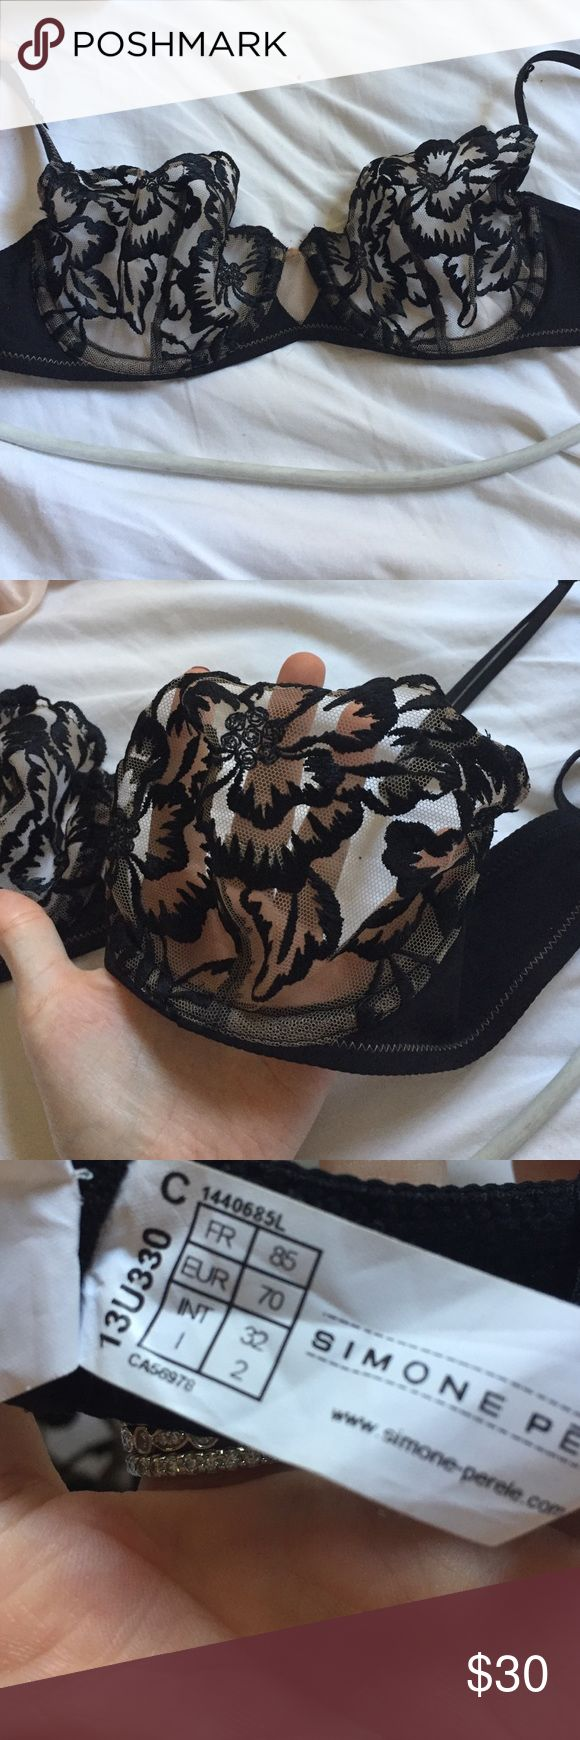 High quality worn once, 32 black bra I bought this at a high end lingerie store similar to la perla, the cups look see through but actually provide an almost nude look. The bra is a 32C. No wear and tear whatsoever, forgot to return it and took tags off. Z Simon perele Intimates & Sleepwear Bras